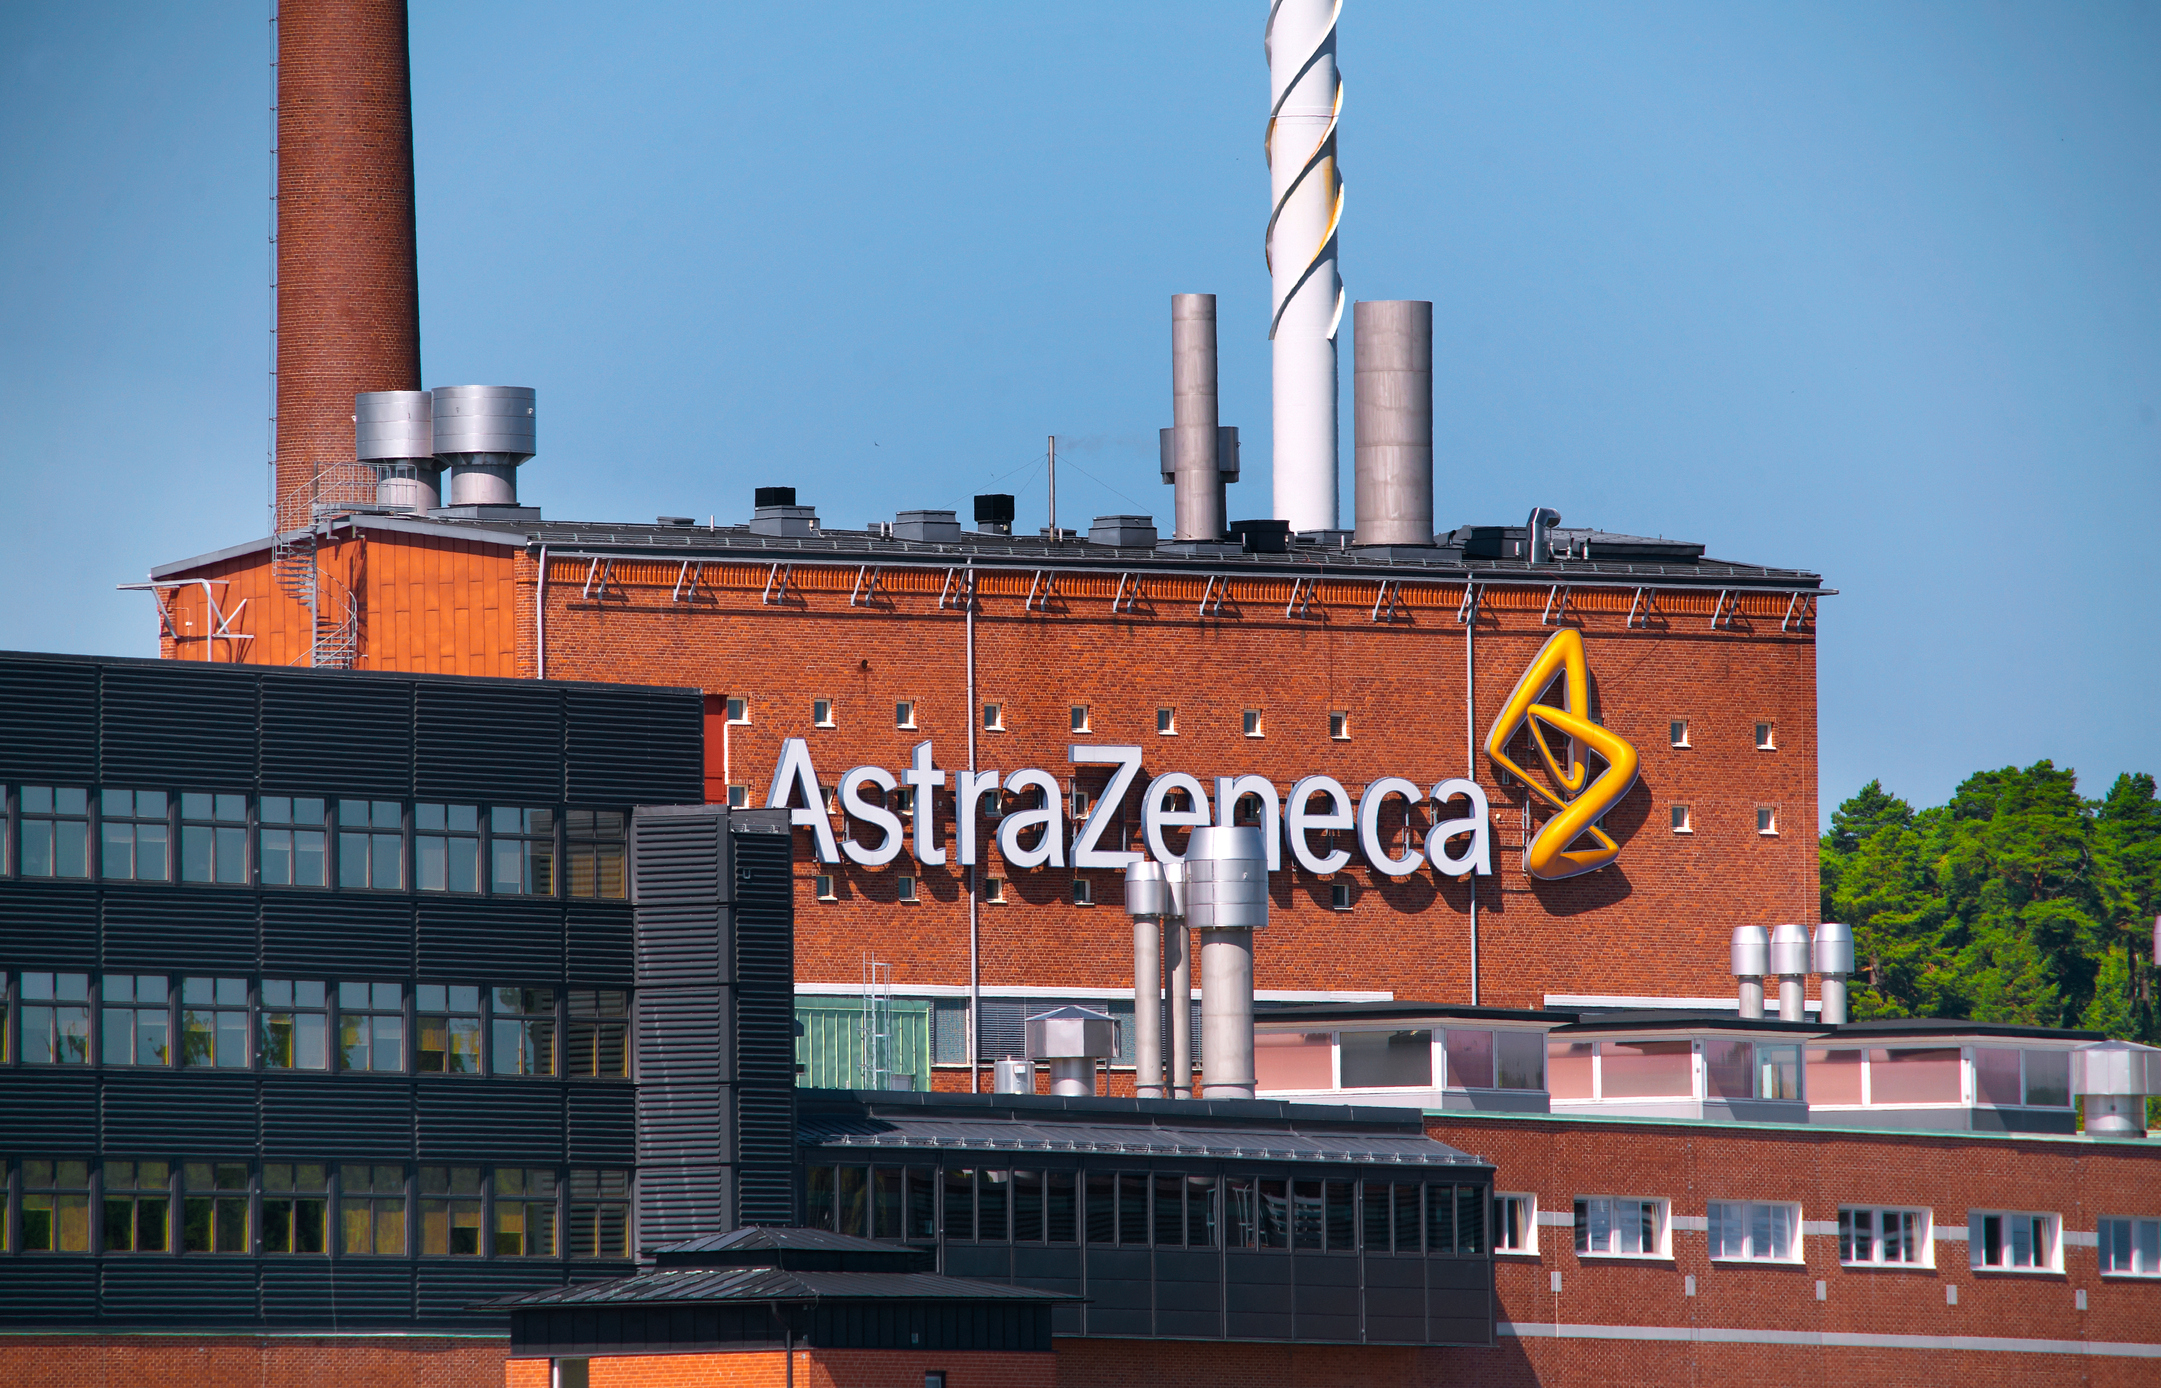 AstraZeneca to Pay $6.9 Billion for Rights to Cancer Drug | Fortune